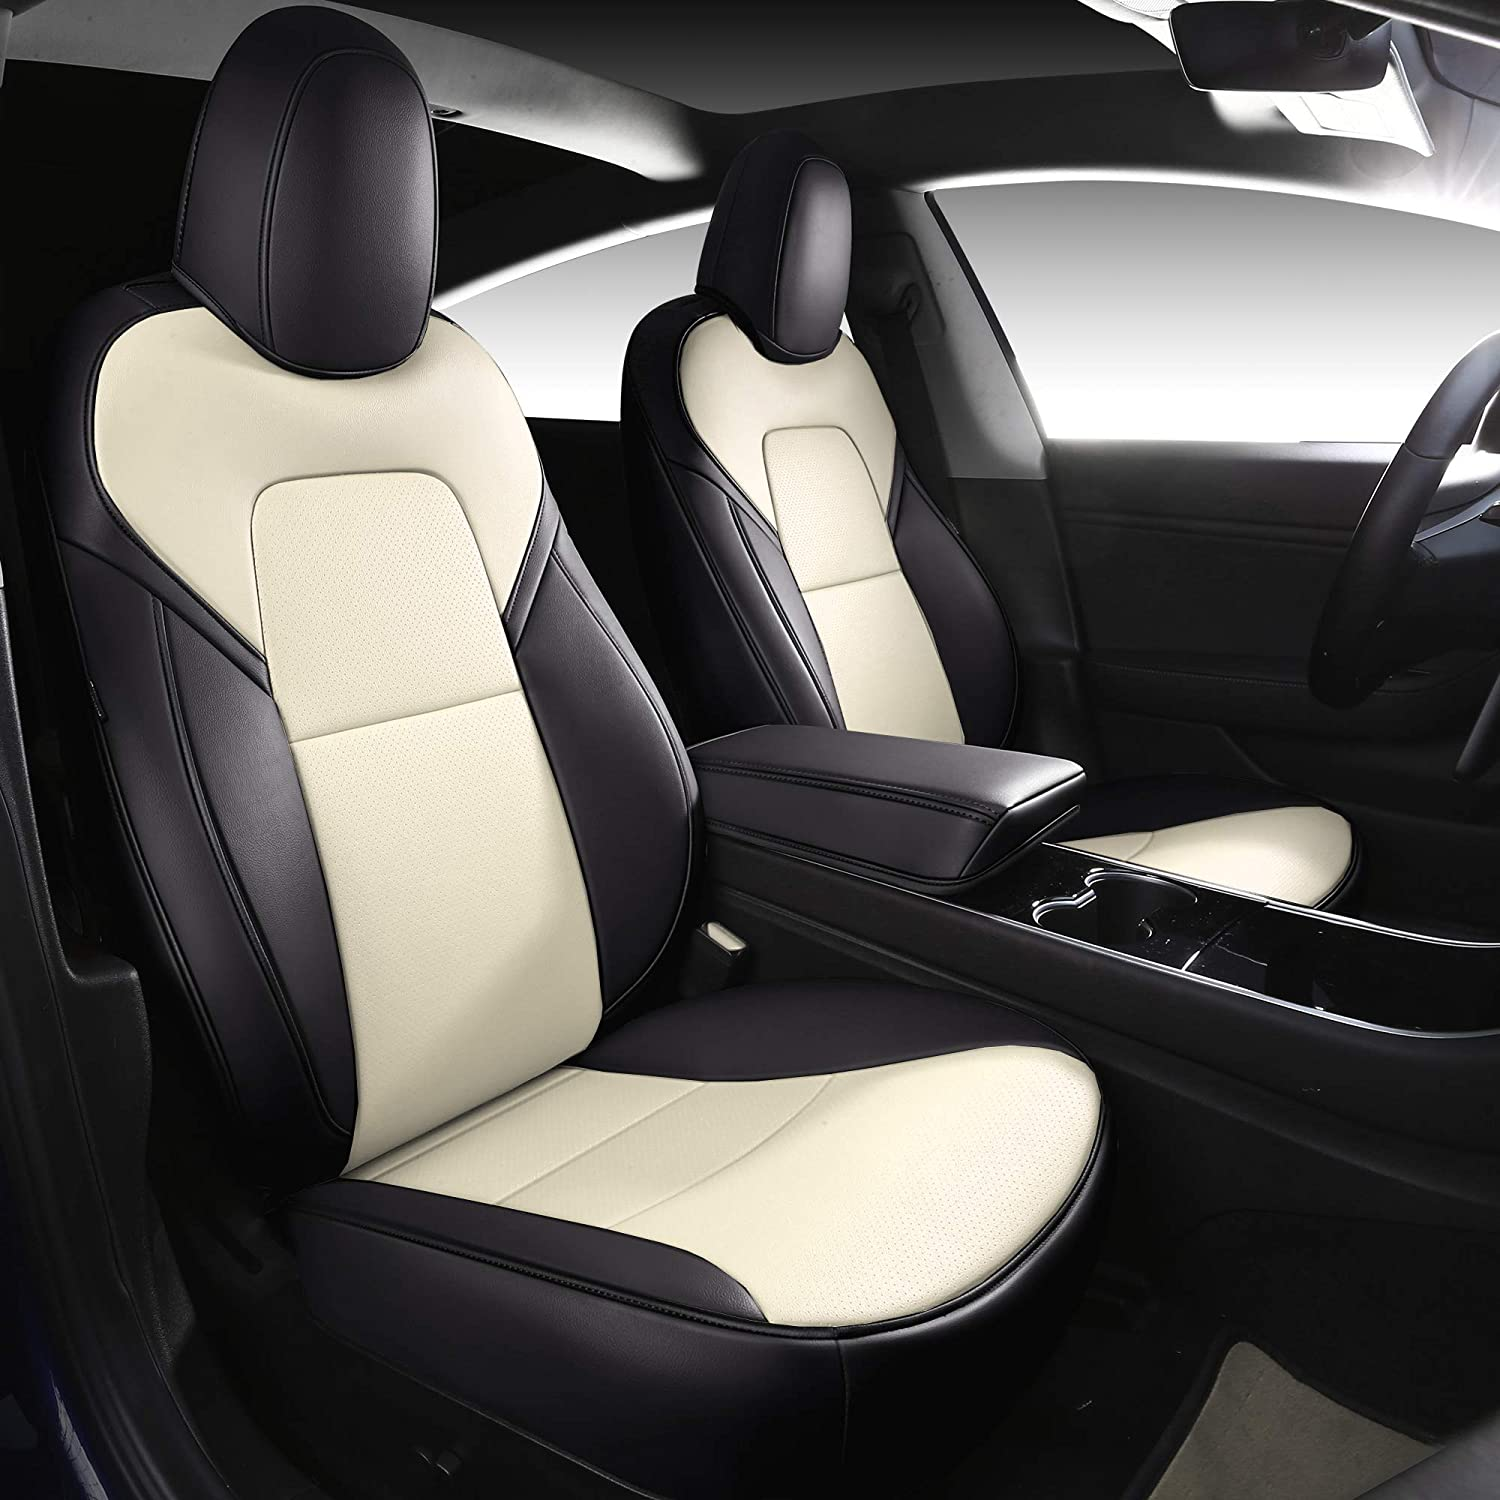 INCH EMPIRE Car Seat Cover for Tesla Model 3 PU Leather Seat Protector Custom Fit for Model 3 2017 2018 2019 2020 All Season(Black&Beige)